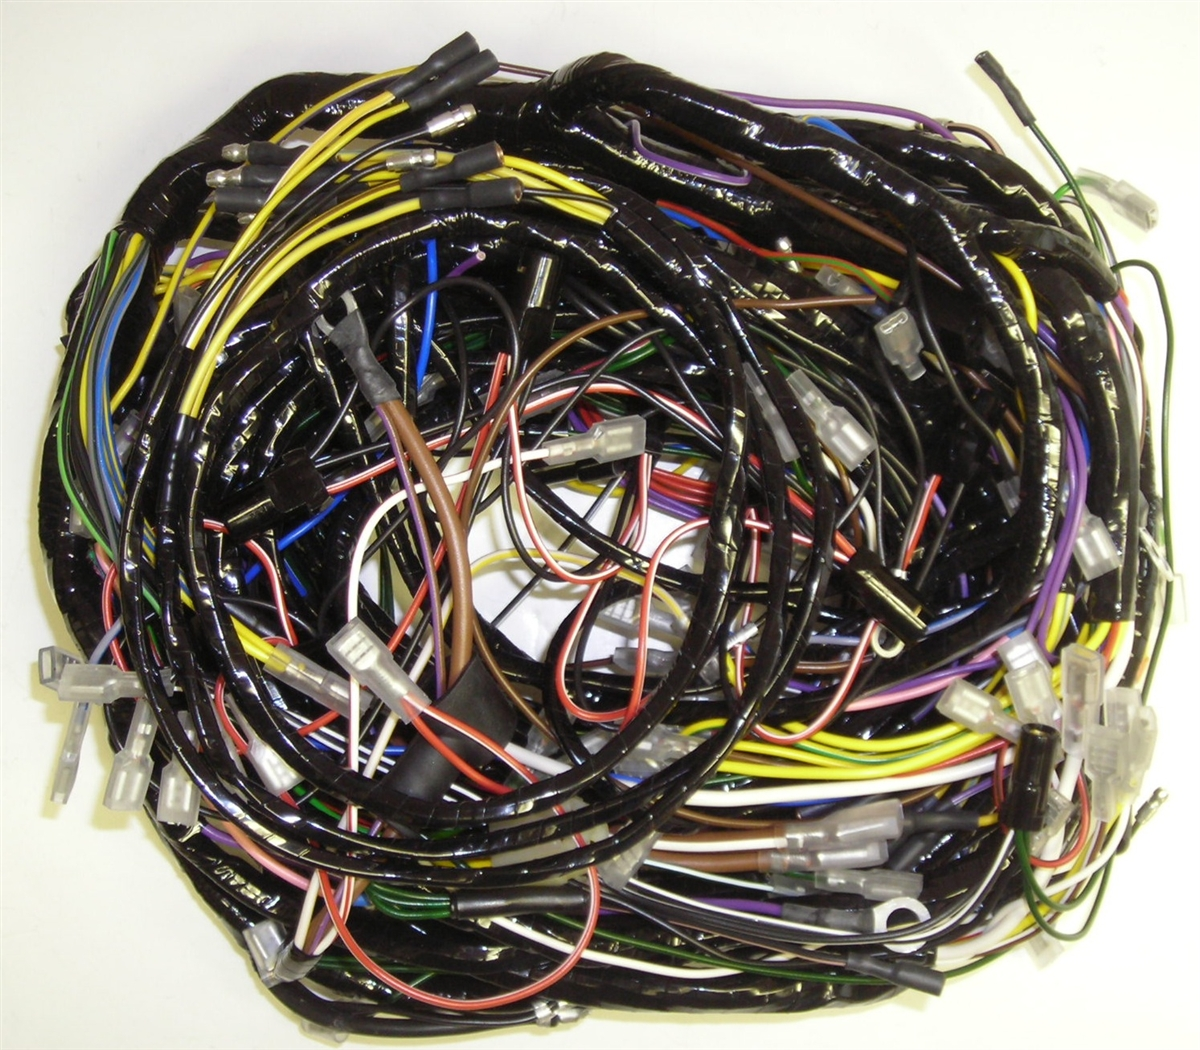 lotus europa s3 1973 74 complete wiring harness Painless Wiring Car Kits